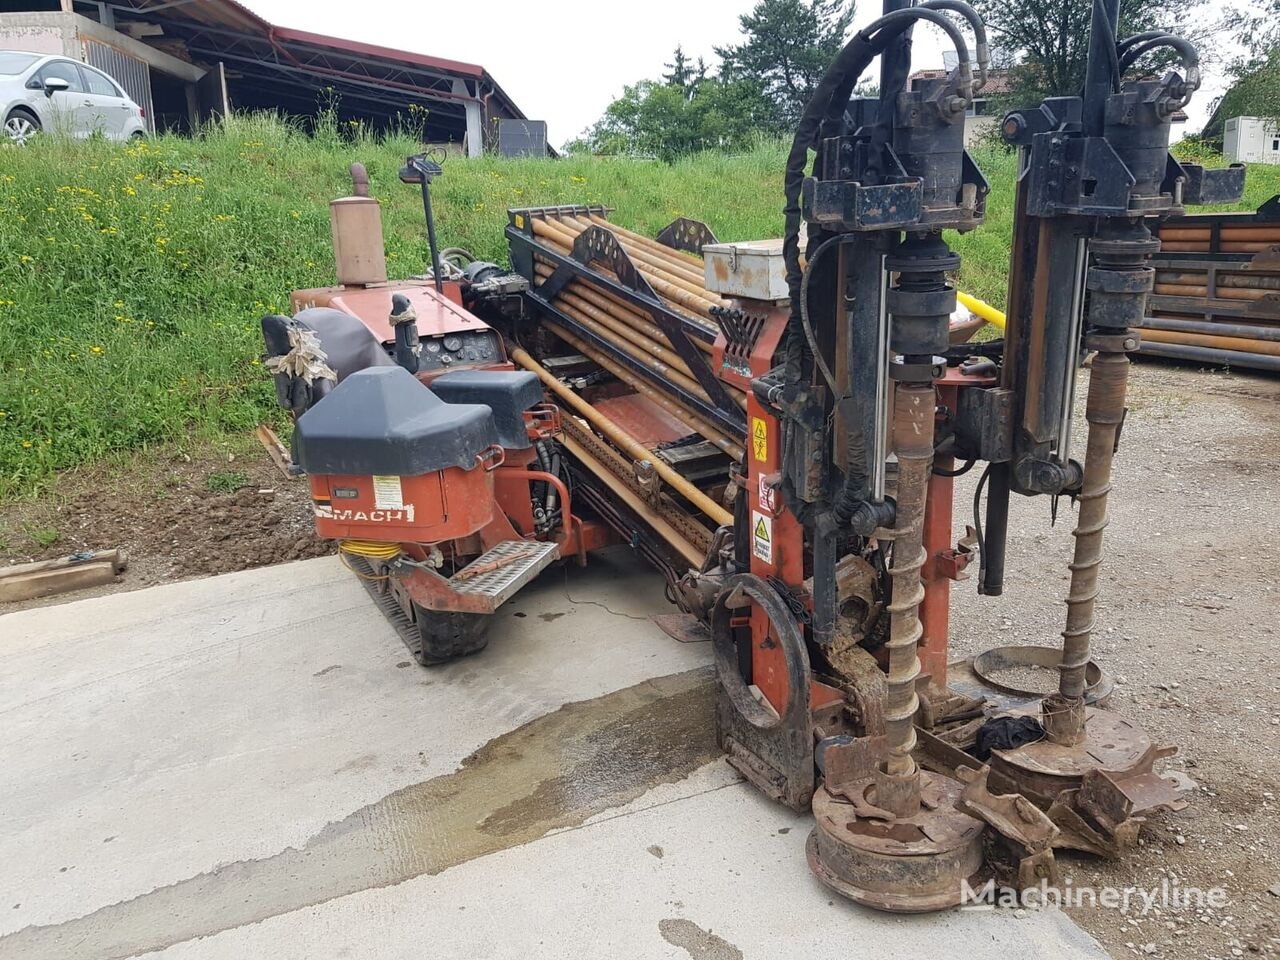 DITCH-WITCH JT2720 horizontal drilling rig